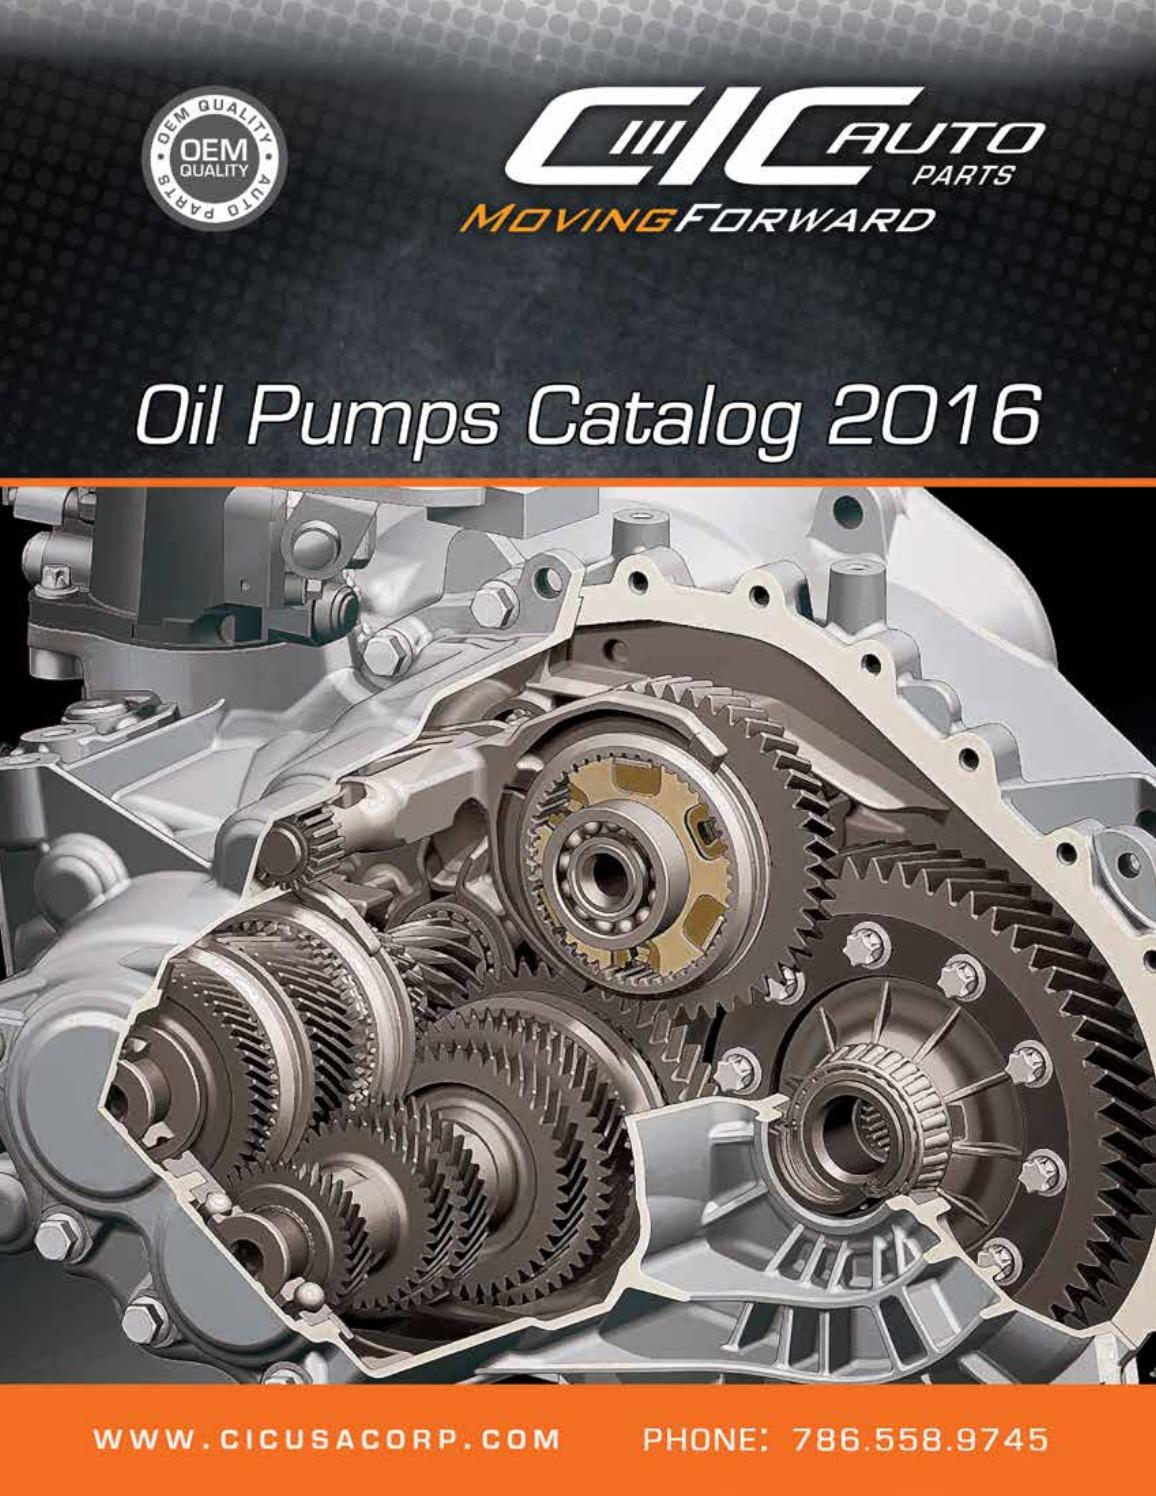 Oil pumps catalog 2016 by cic usa corp issuu publicscrutiny Gallery